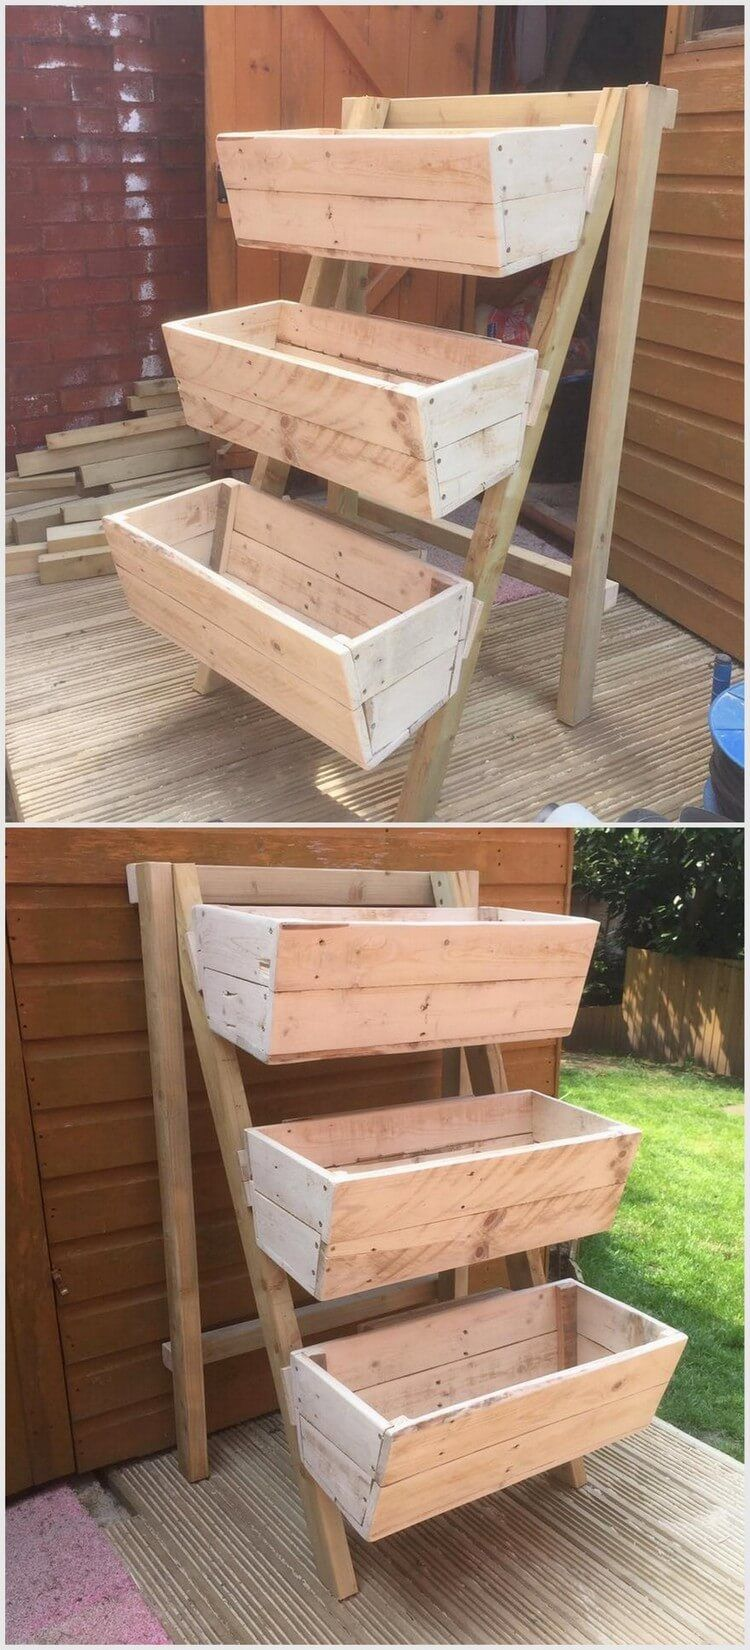 Recycling Ideas With Old Shipping Pallets Wood